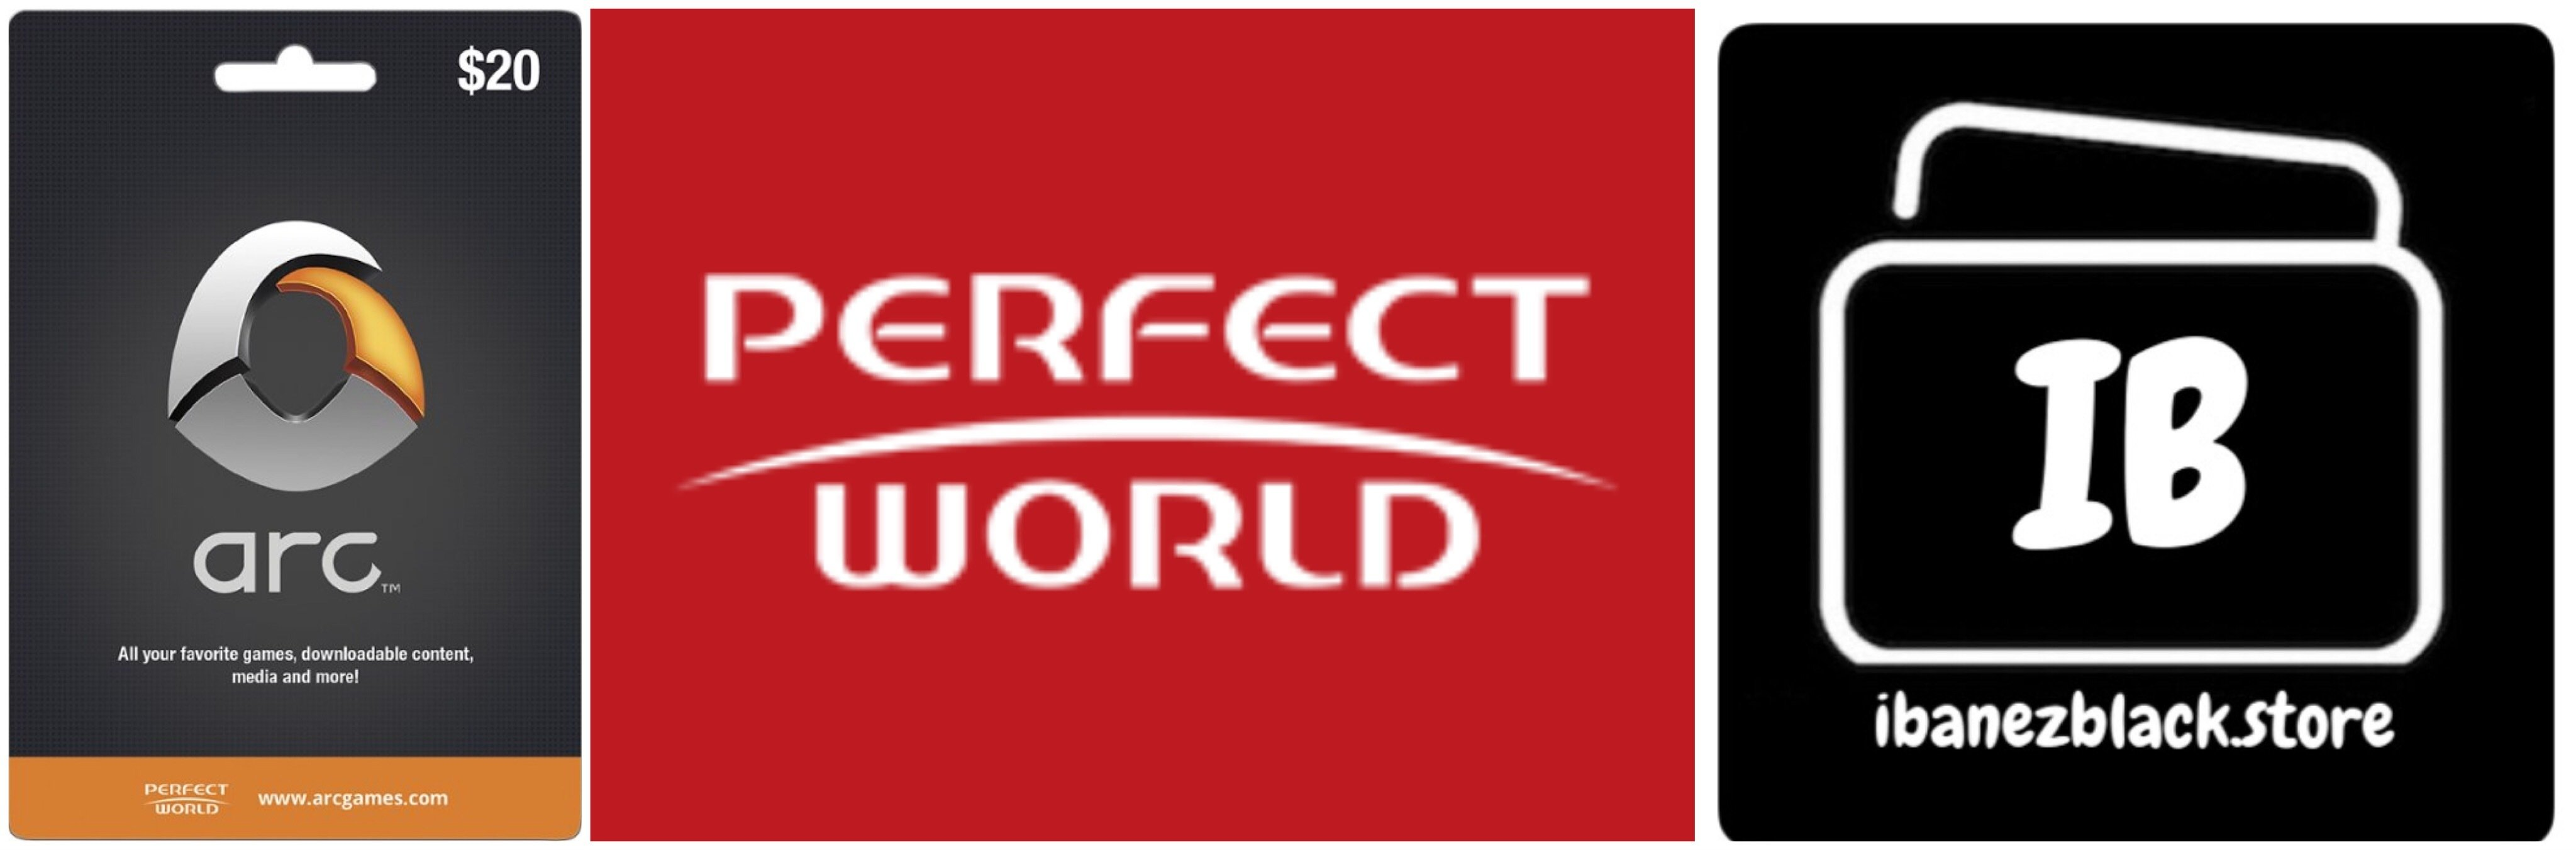 Perfect World Entertainment Gift Card $20